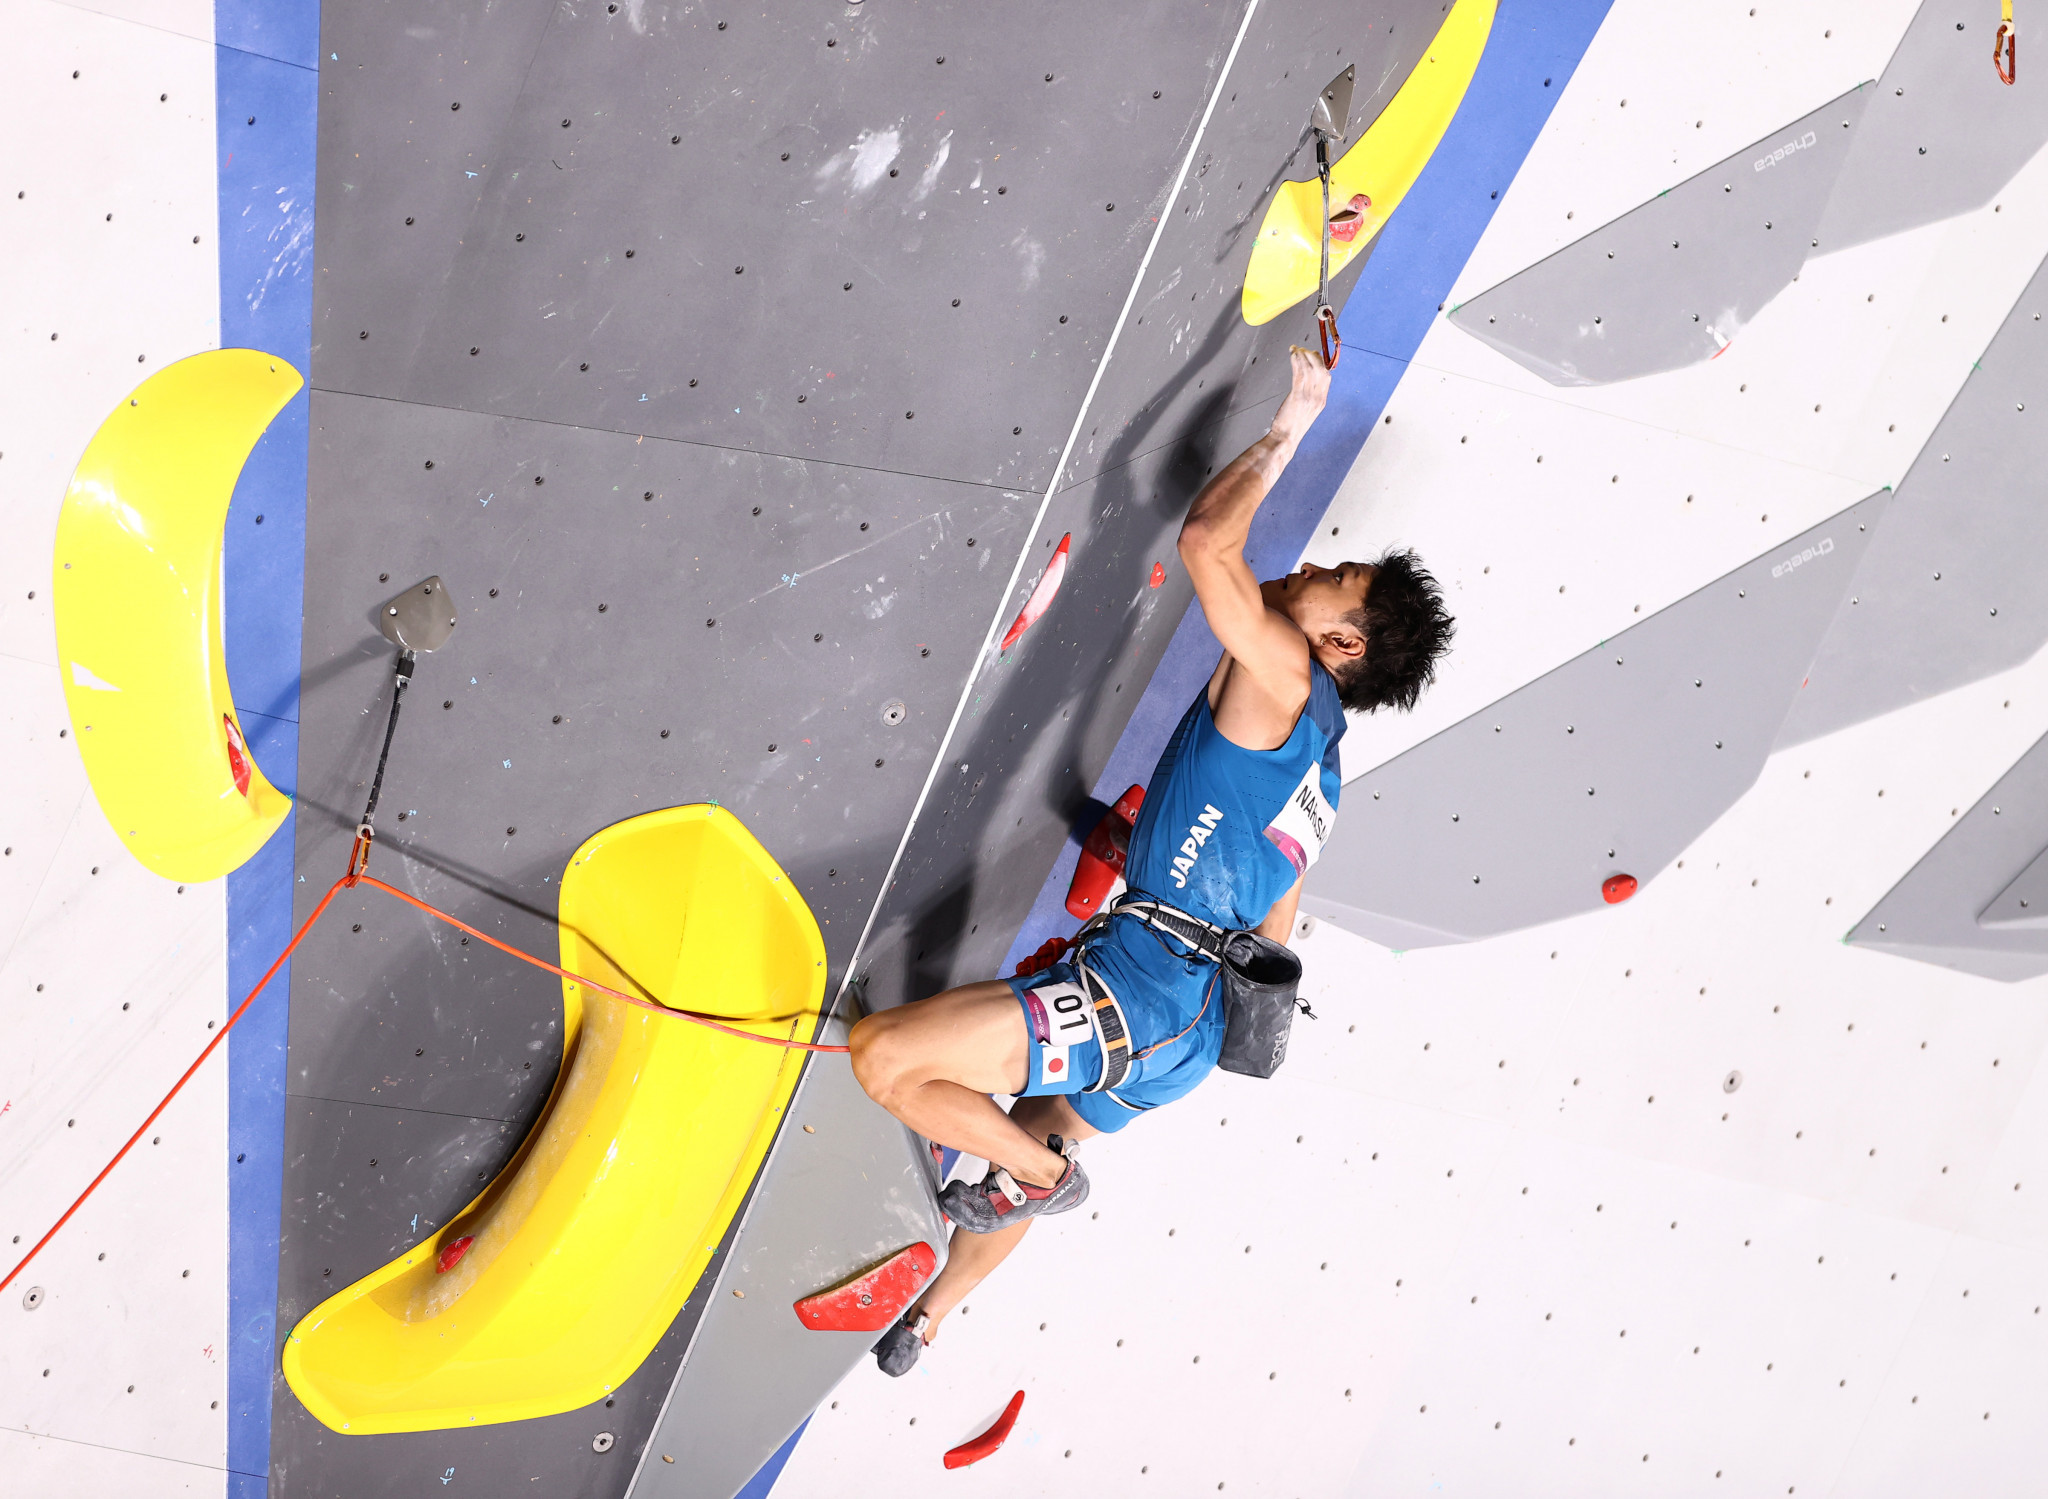 Narasaki and Seo lead the way in qualification at IFSC Climbing World Championships